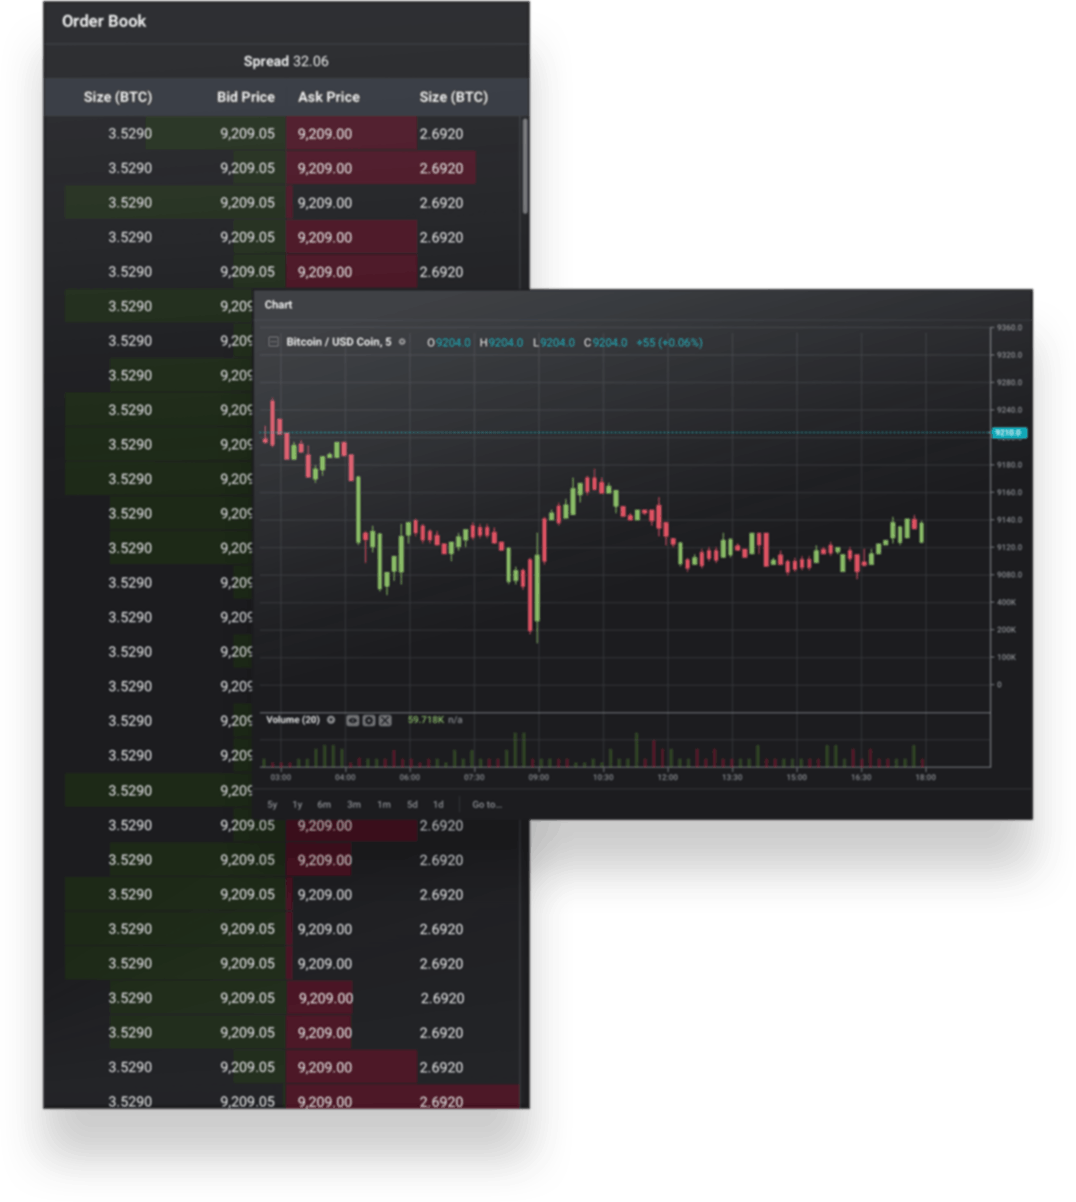 Spot Trading order book and price chart on EQONEX.